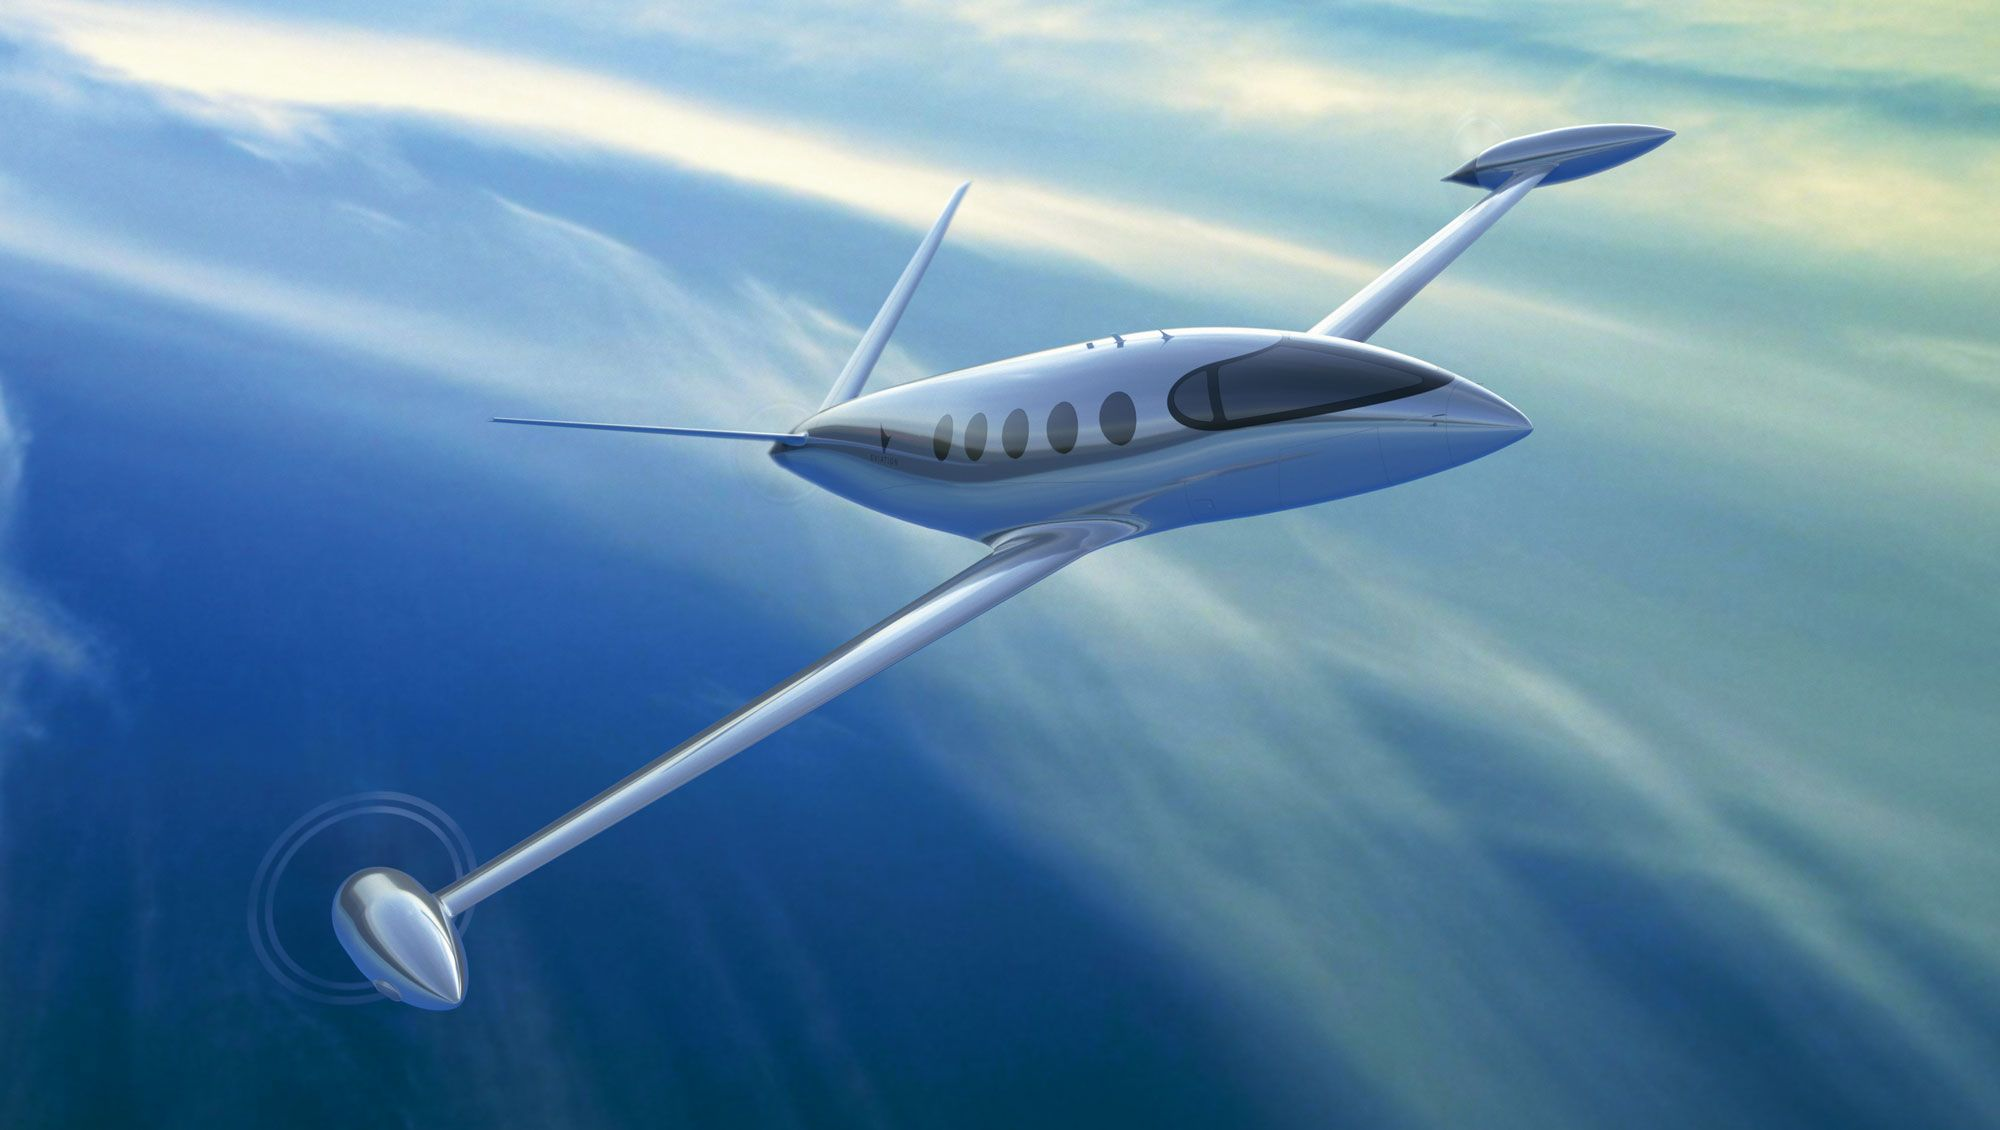 A rendering of the Eviation Alice electric aircraft frame, which was unveiled at the Paris Air Show in June. (Photo courtesy of Eviation)